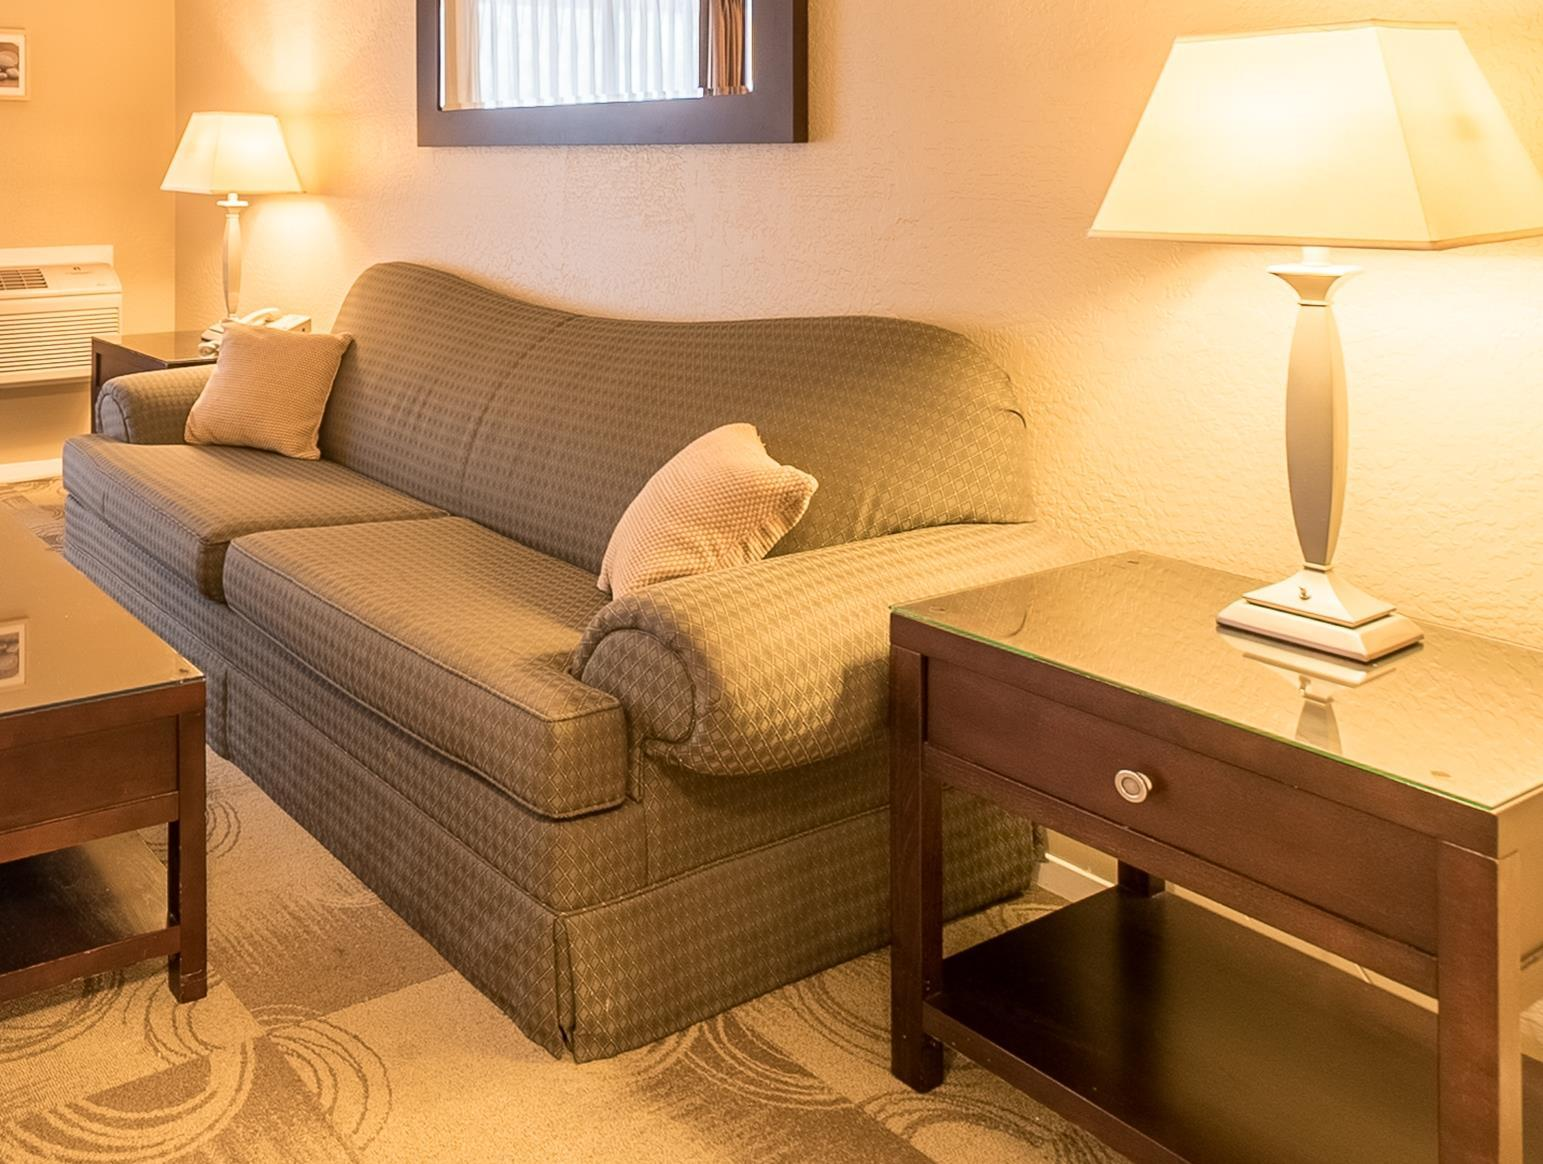 Junior Suite - Free Internet In Room - Free Parking - Fridge - Microwave - Whirlpool